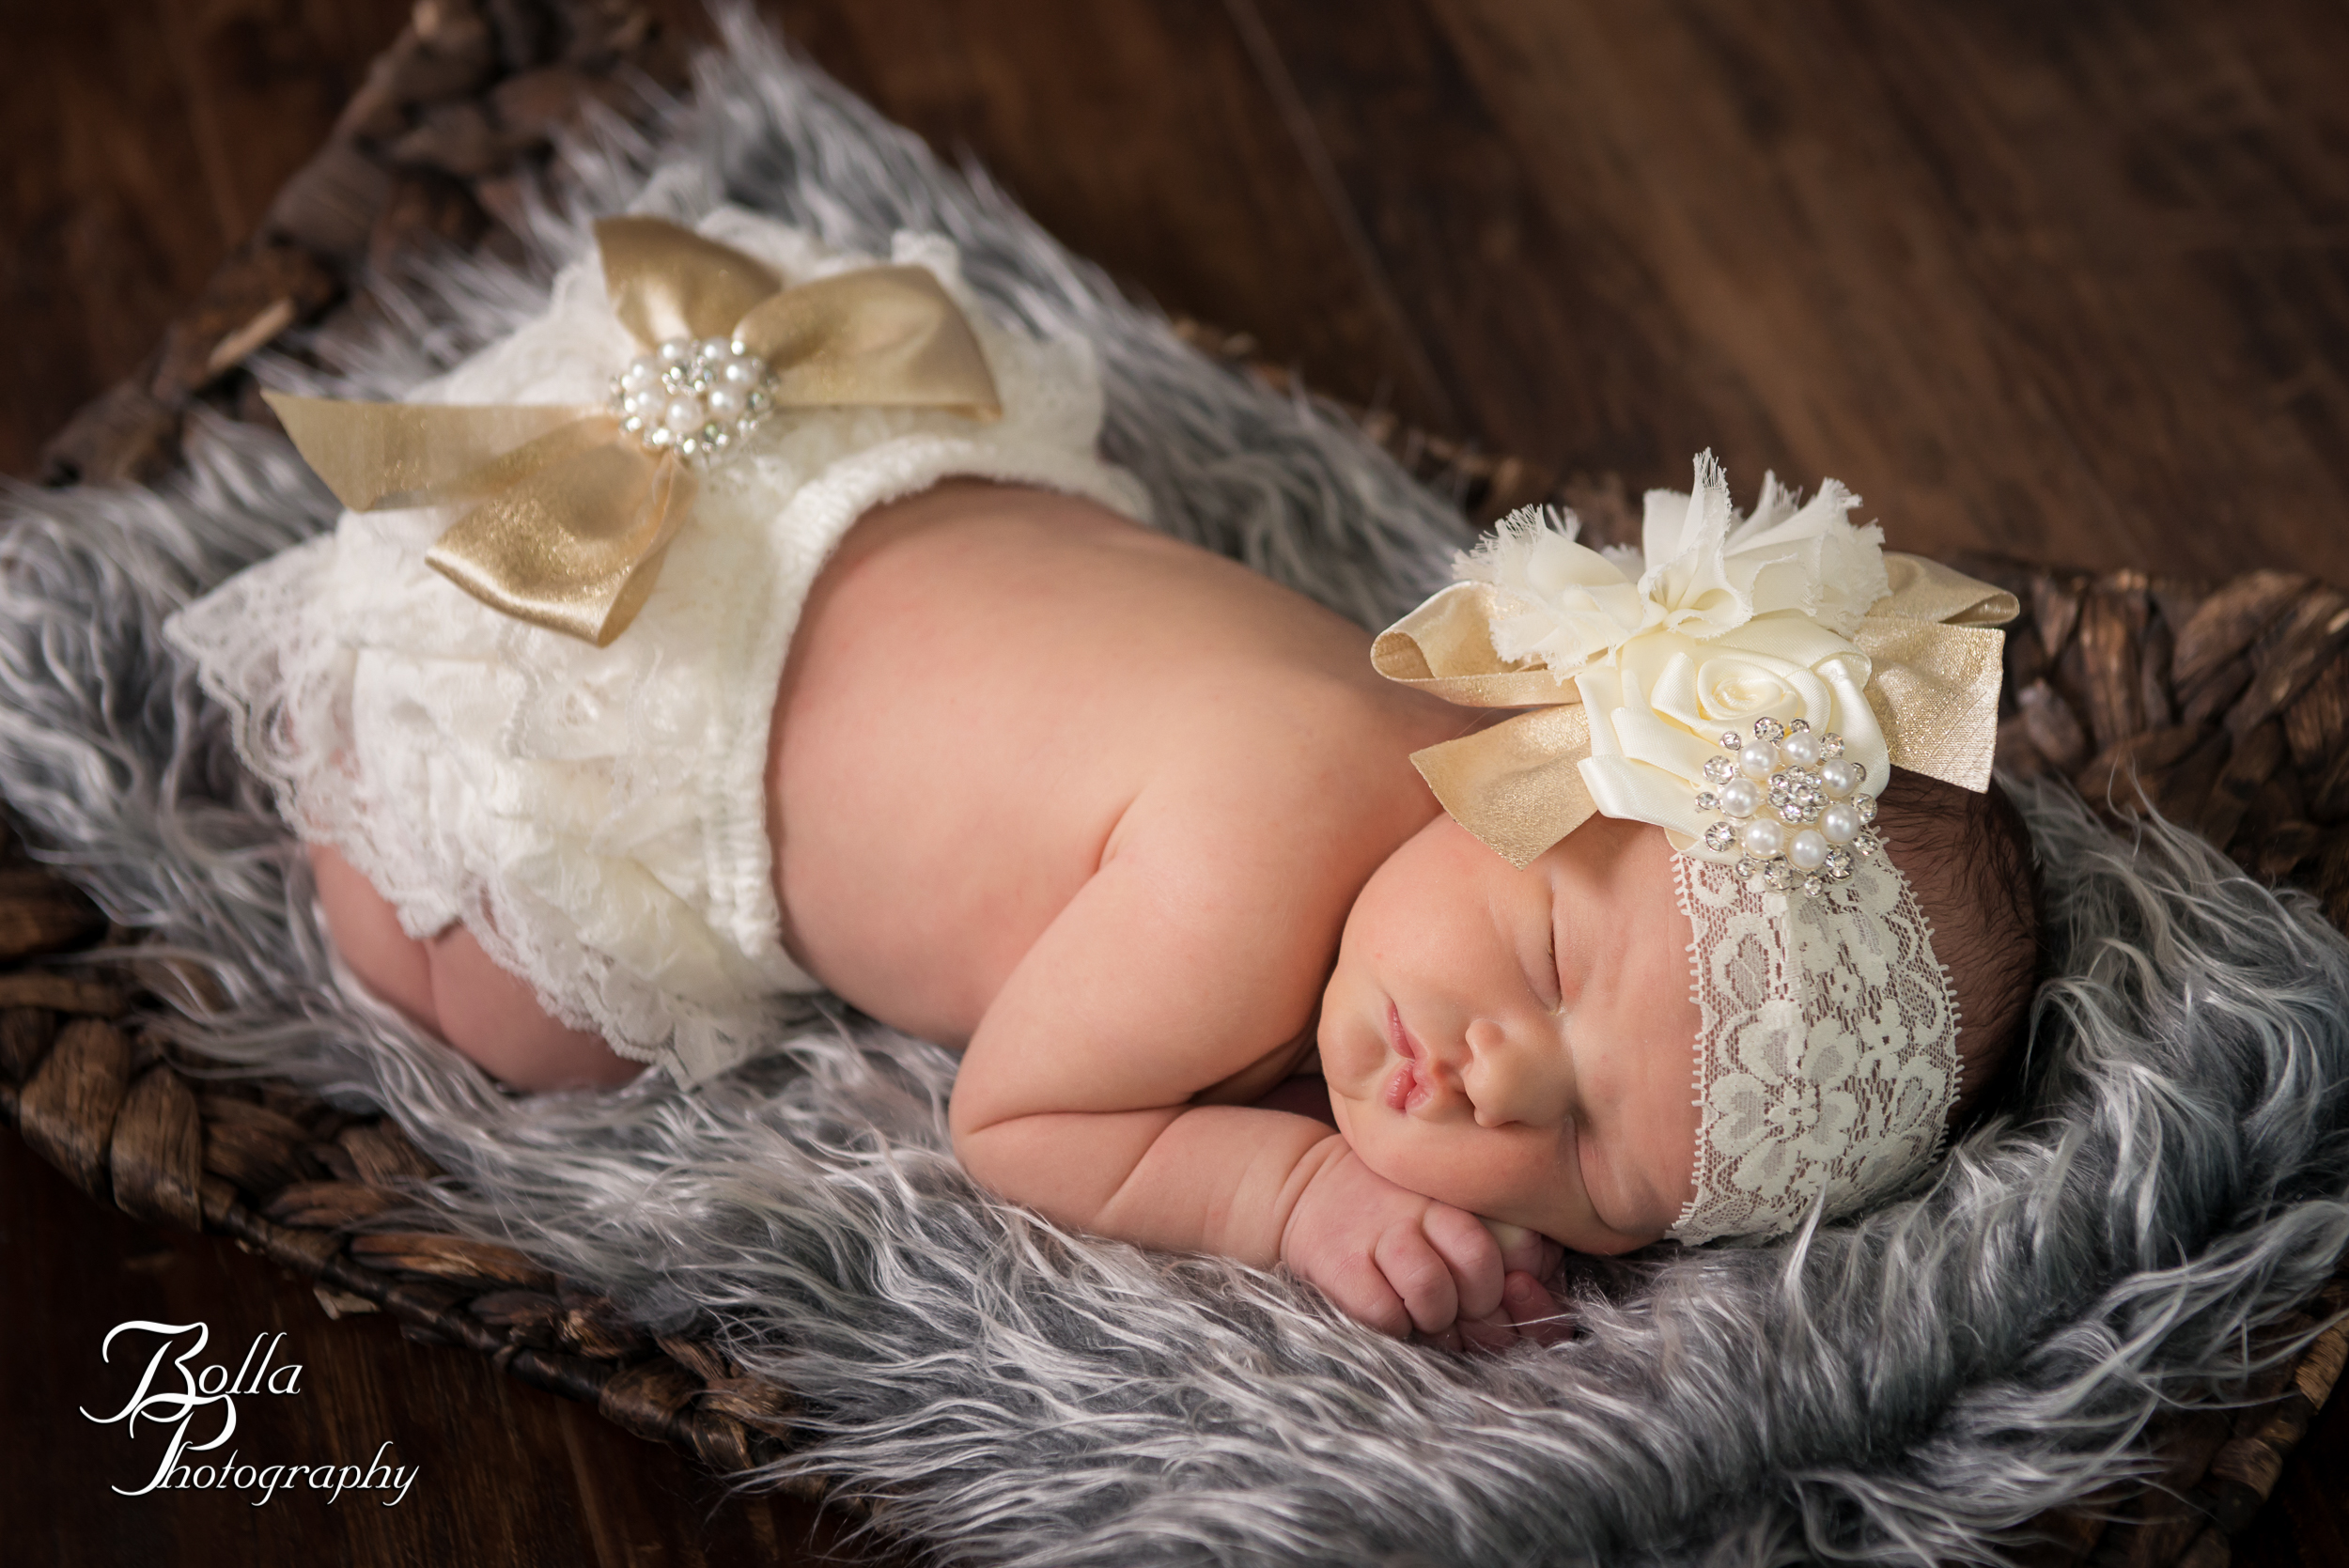 20170529_Bolla photography edwardsville wedding newborn photographer st louis weddings babies-0001.jpg